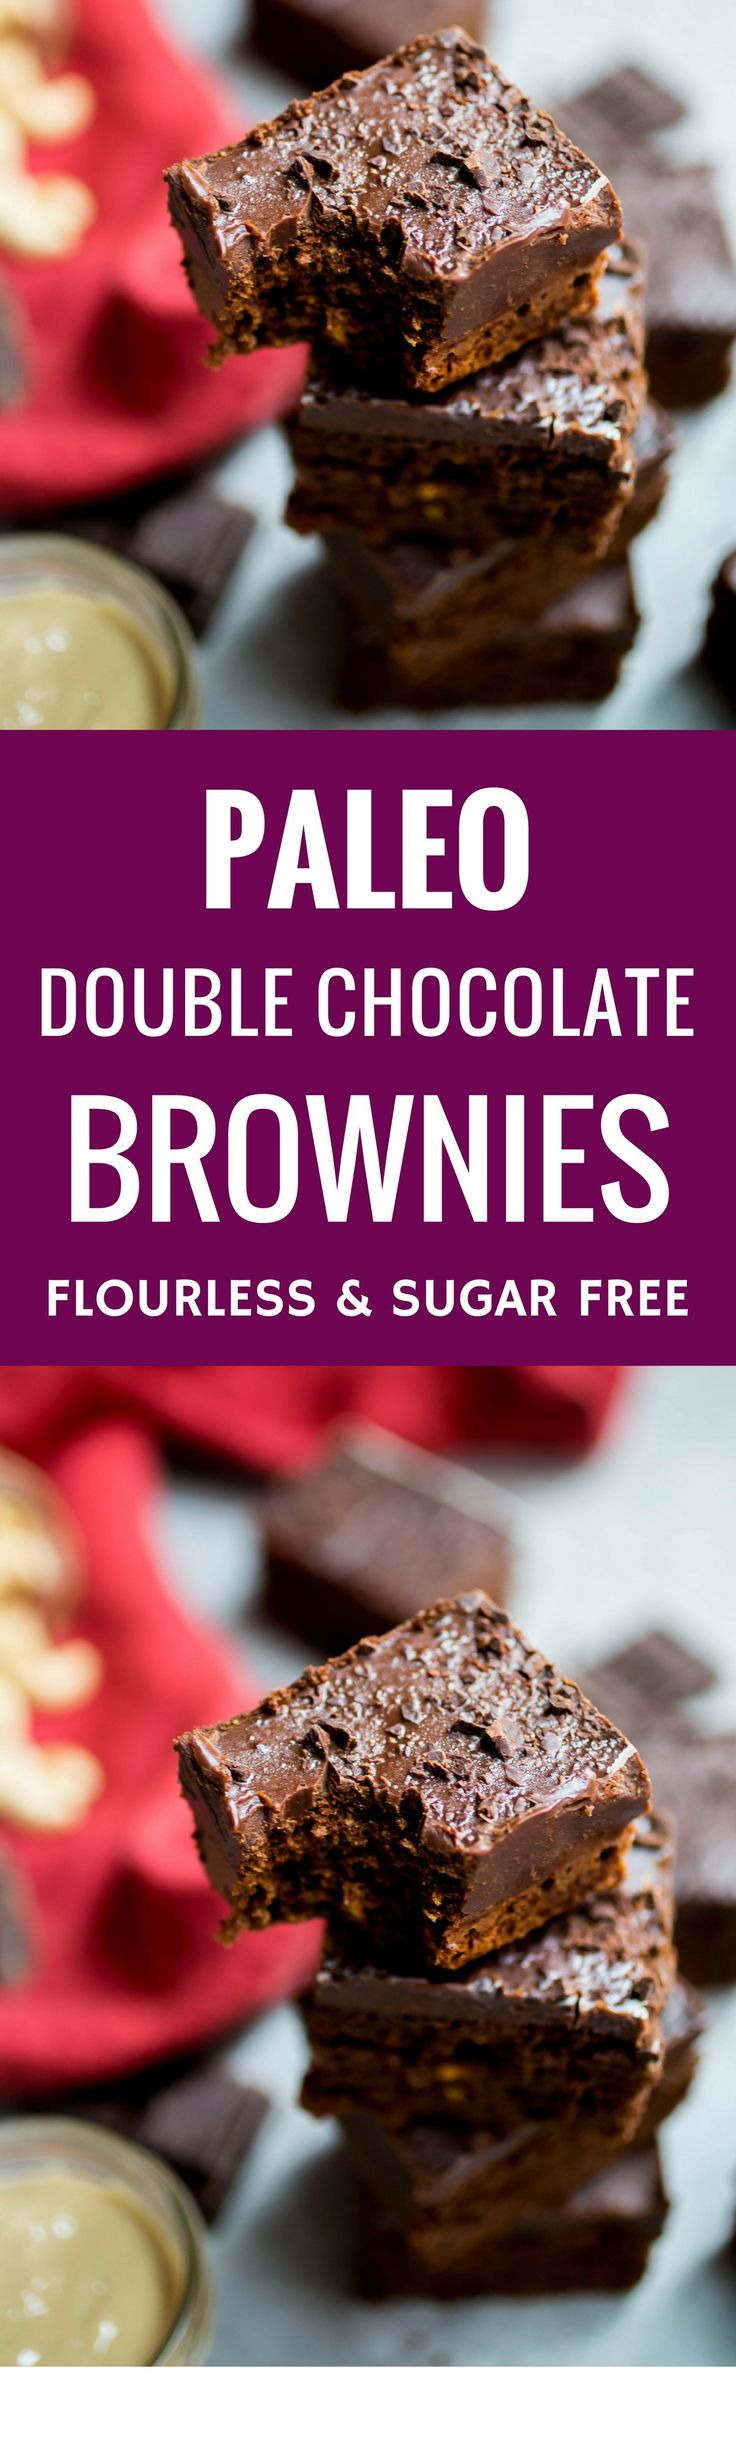 Flourless Double Chocolate Brownies Recipe. Easy and quick paleo brownie recipe. Healthy, gluten free, grain free, dairy free and vegan brownies. Sugar free chocolate dessert. Best paleo brownies. Vegan chocolate brownies. Fudgy paleo double chocolate brownies.